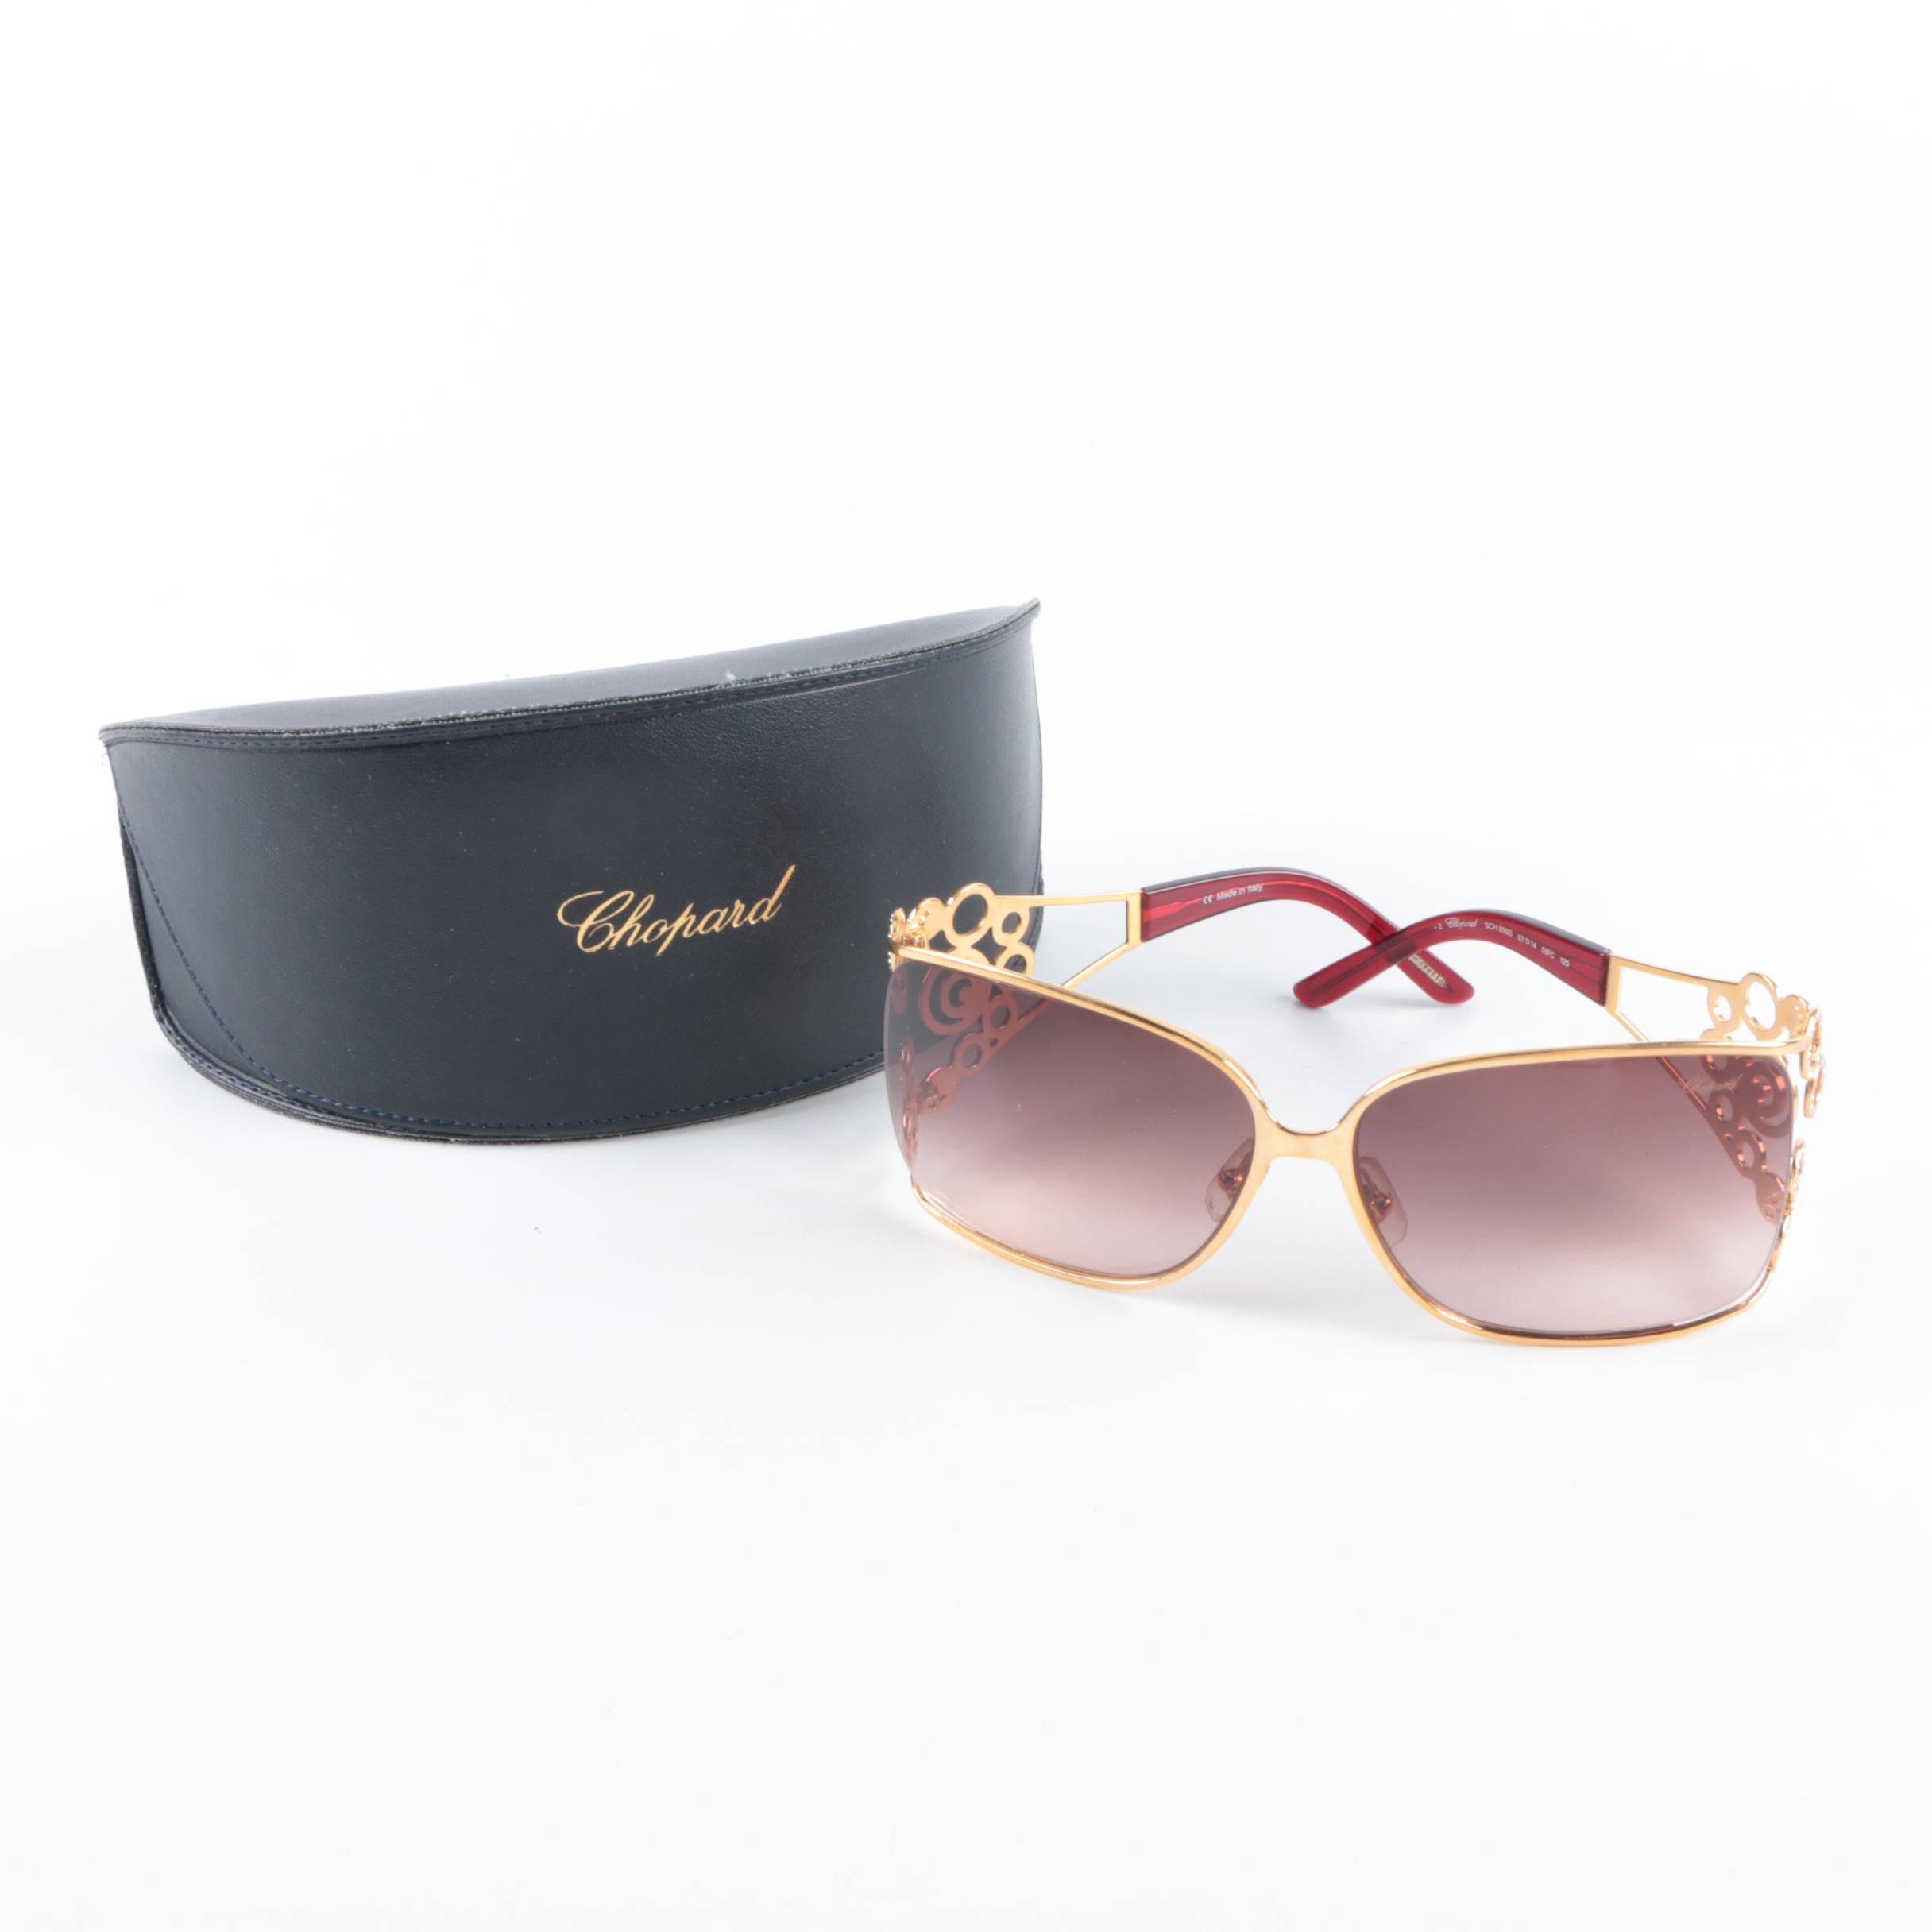 Chopard Sunglasses with Case